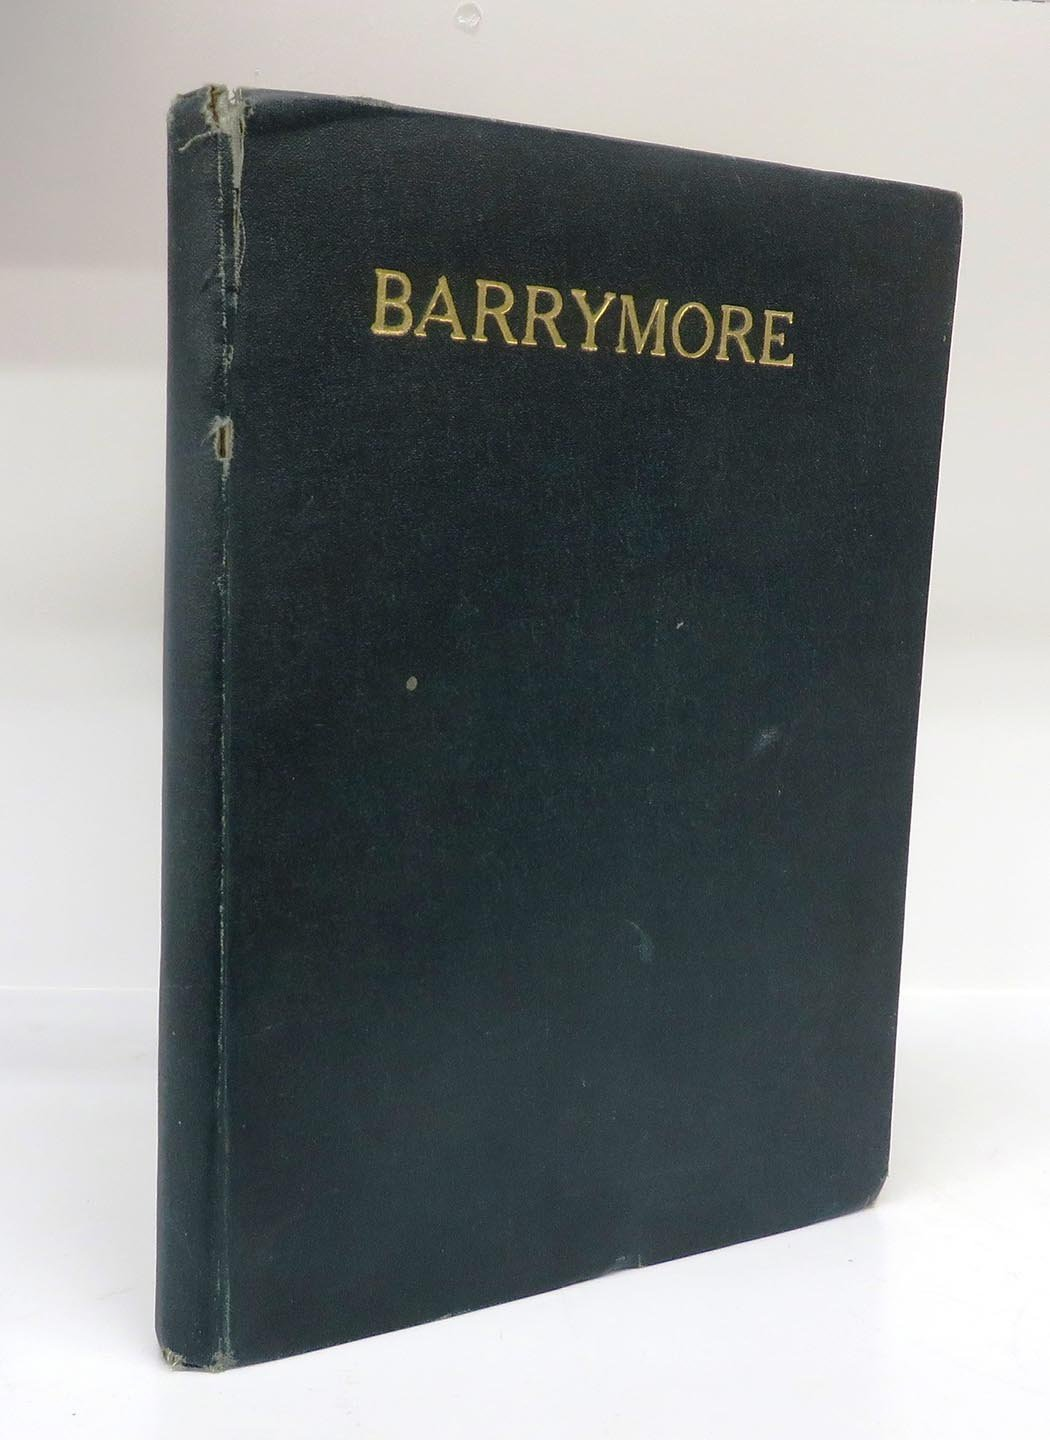 Barrymore: Records of the Barrys of County Cork From the Earliest to the Prest Time. With Pedigrees